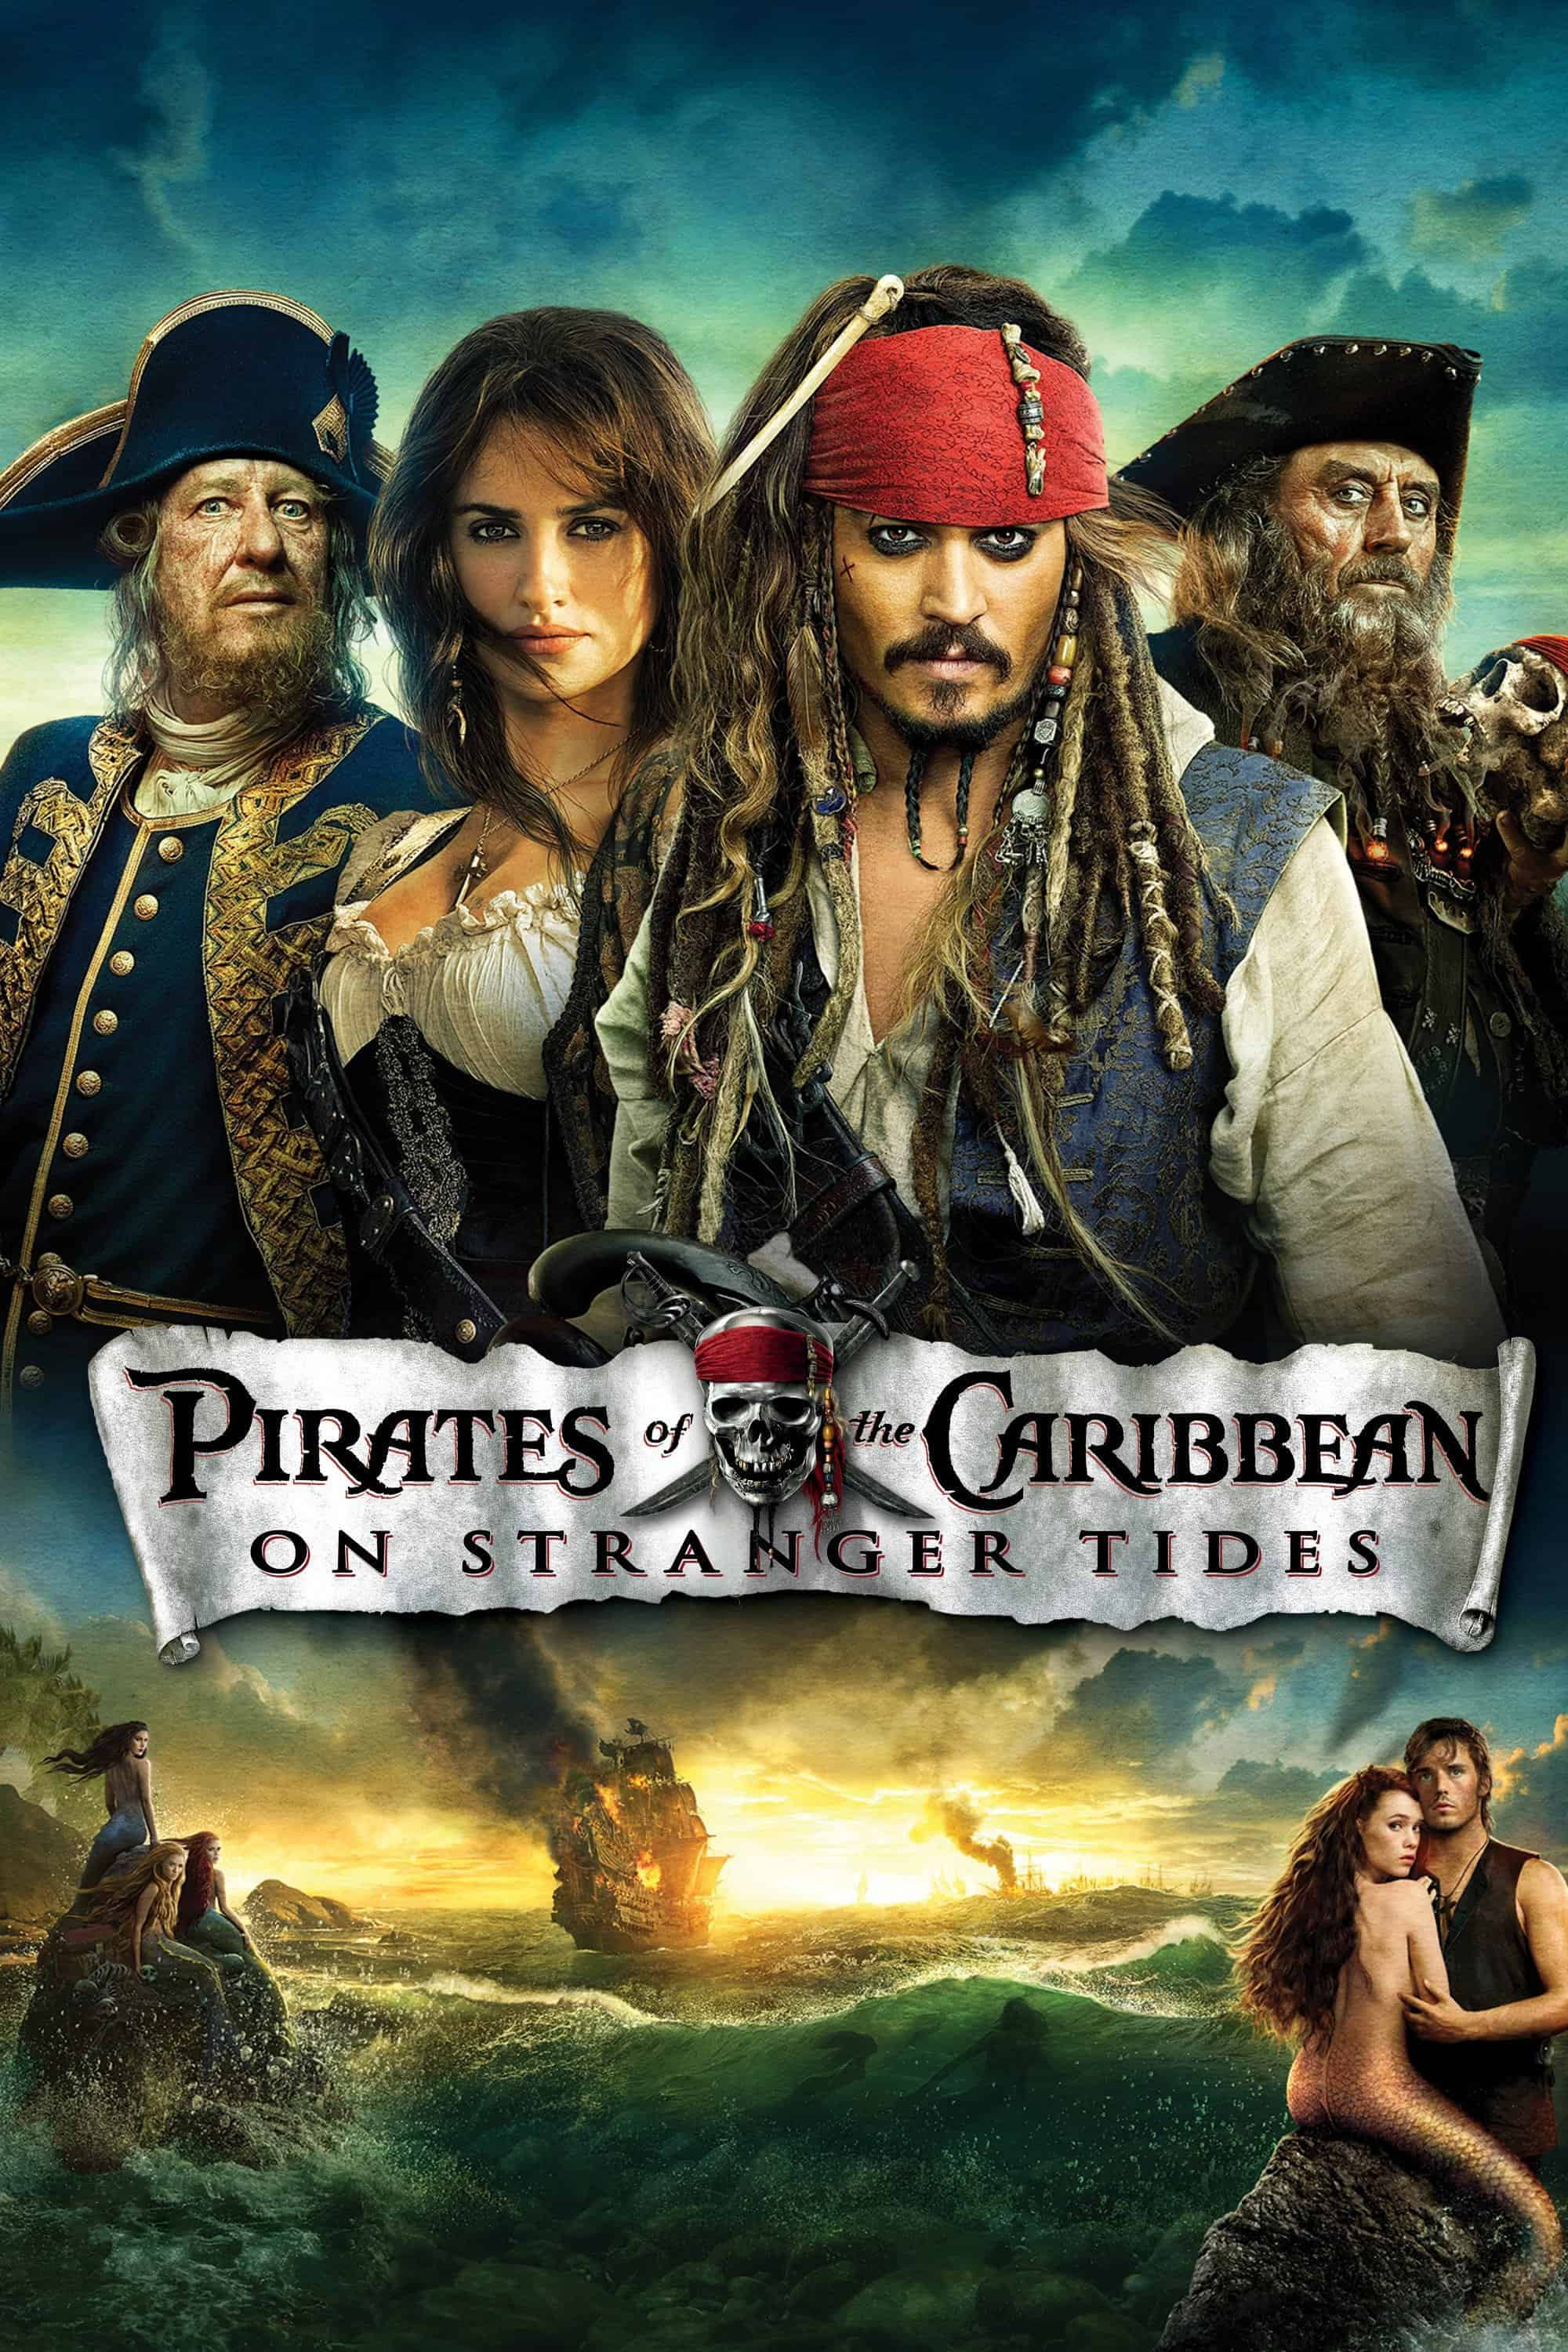 Pirates of the Caribbean: On Stranger Tides, 2011